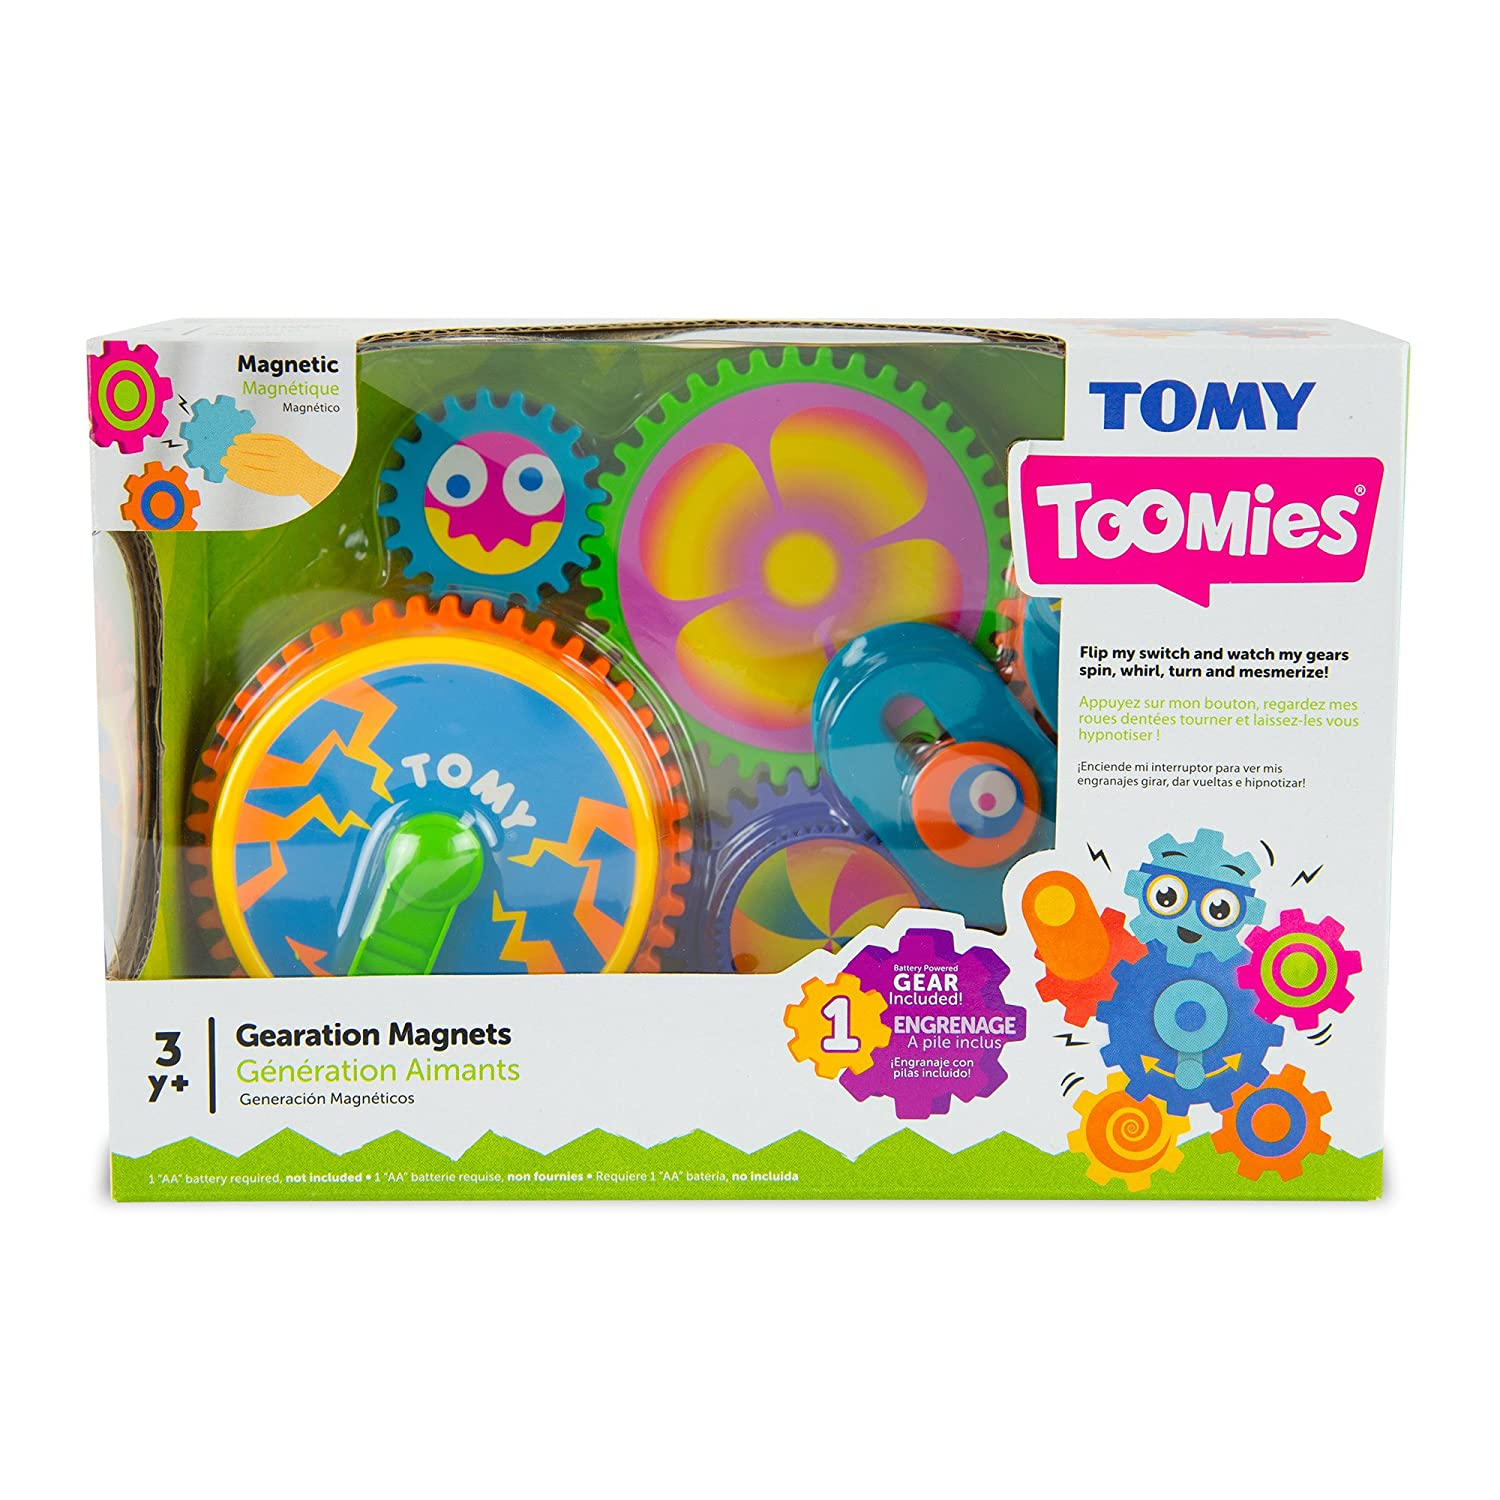 TOMY Gearation Magnets Refrigerator Battery Operated Building Toy Gears 5 NEW